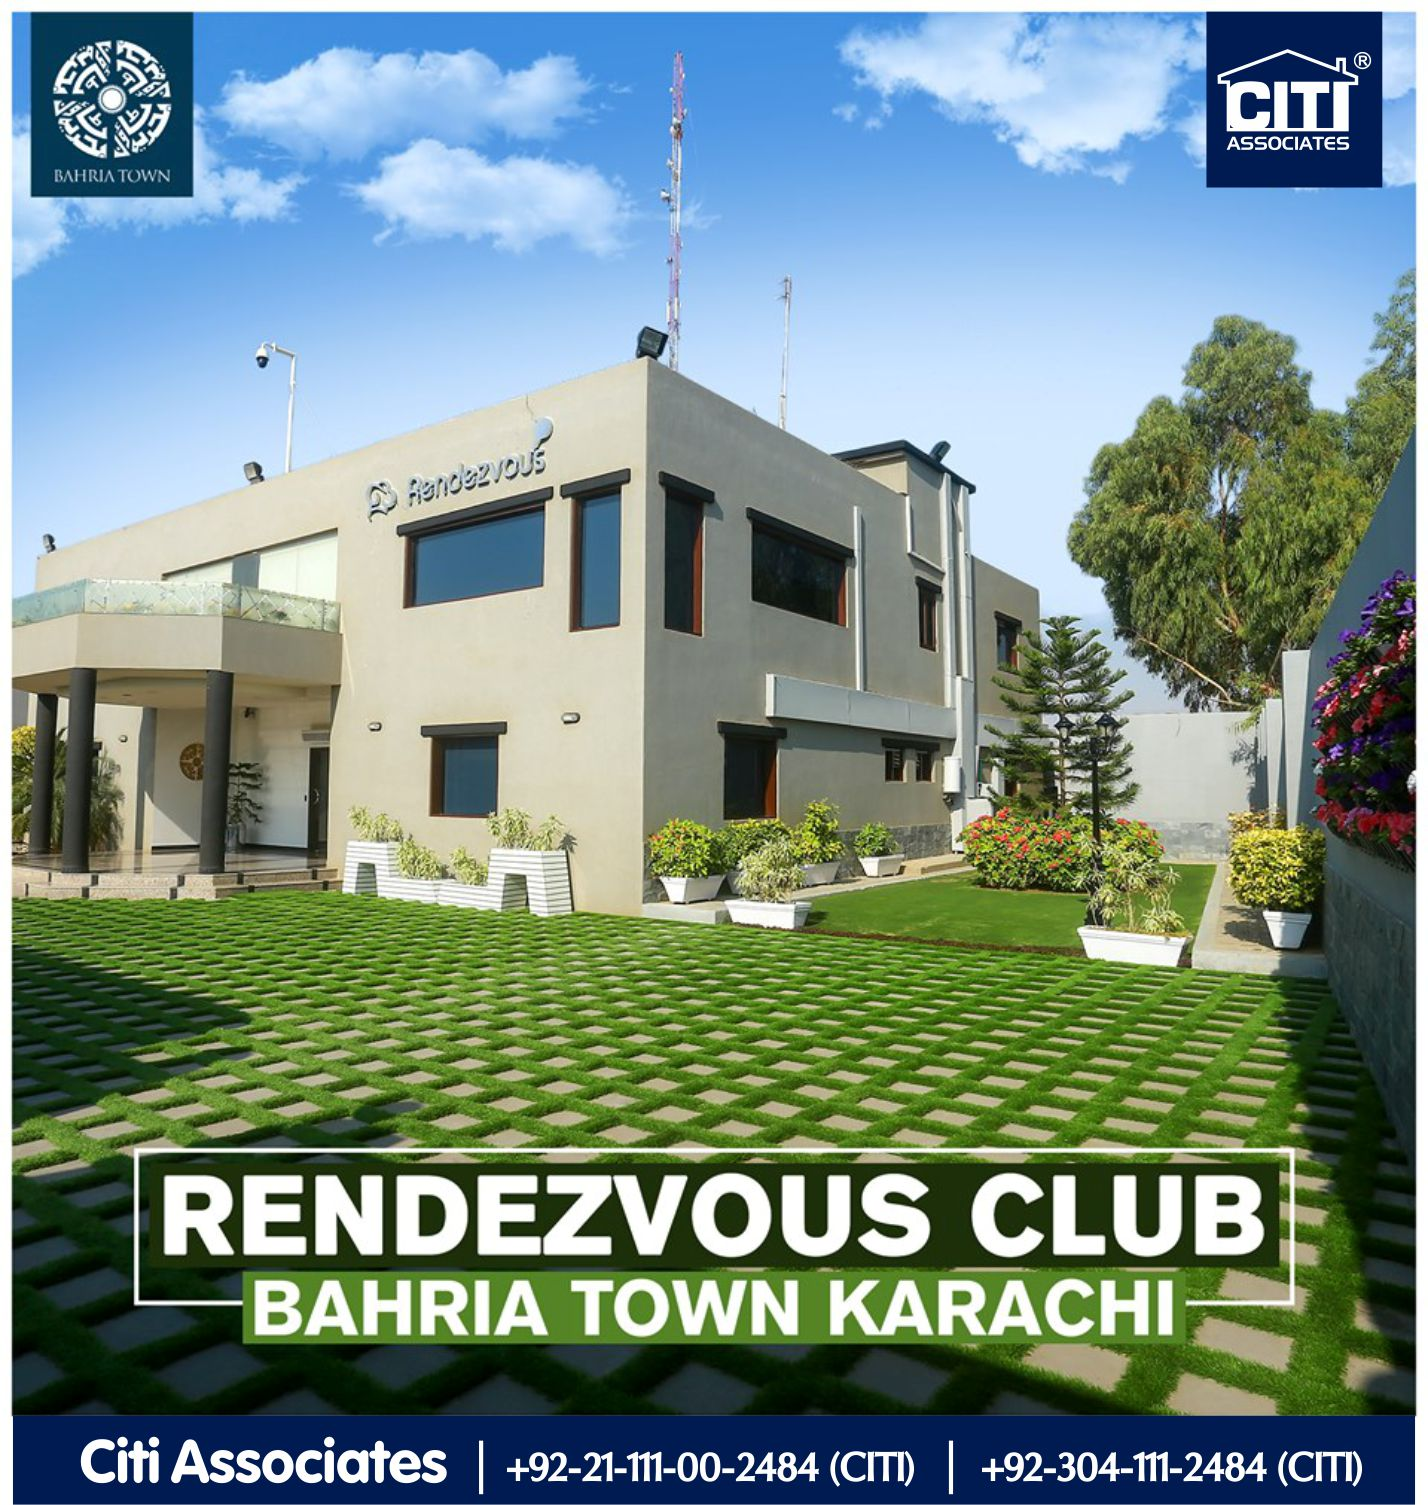 Rendezvous Club for the Residents of Bahria Town Karachi